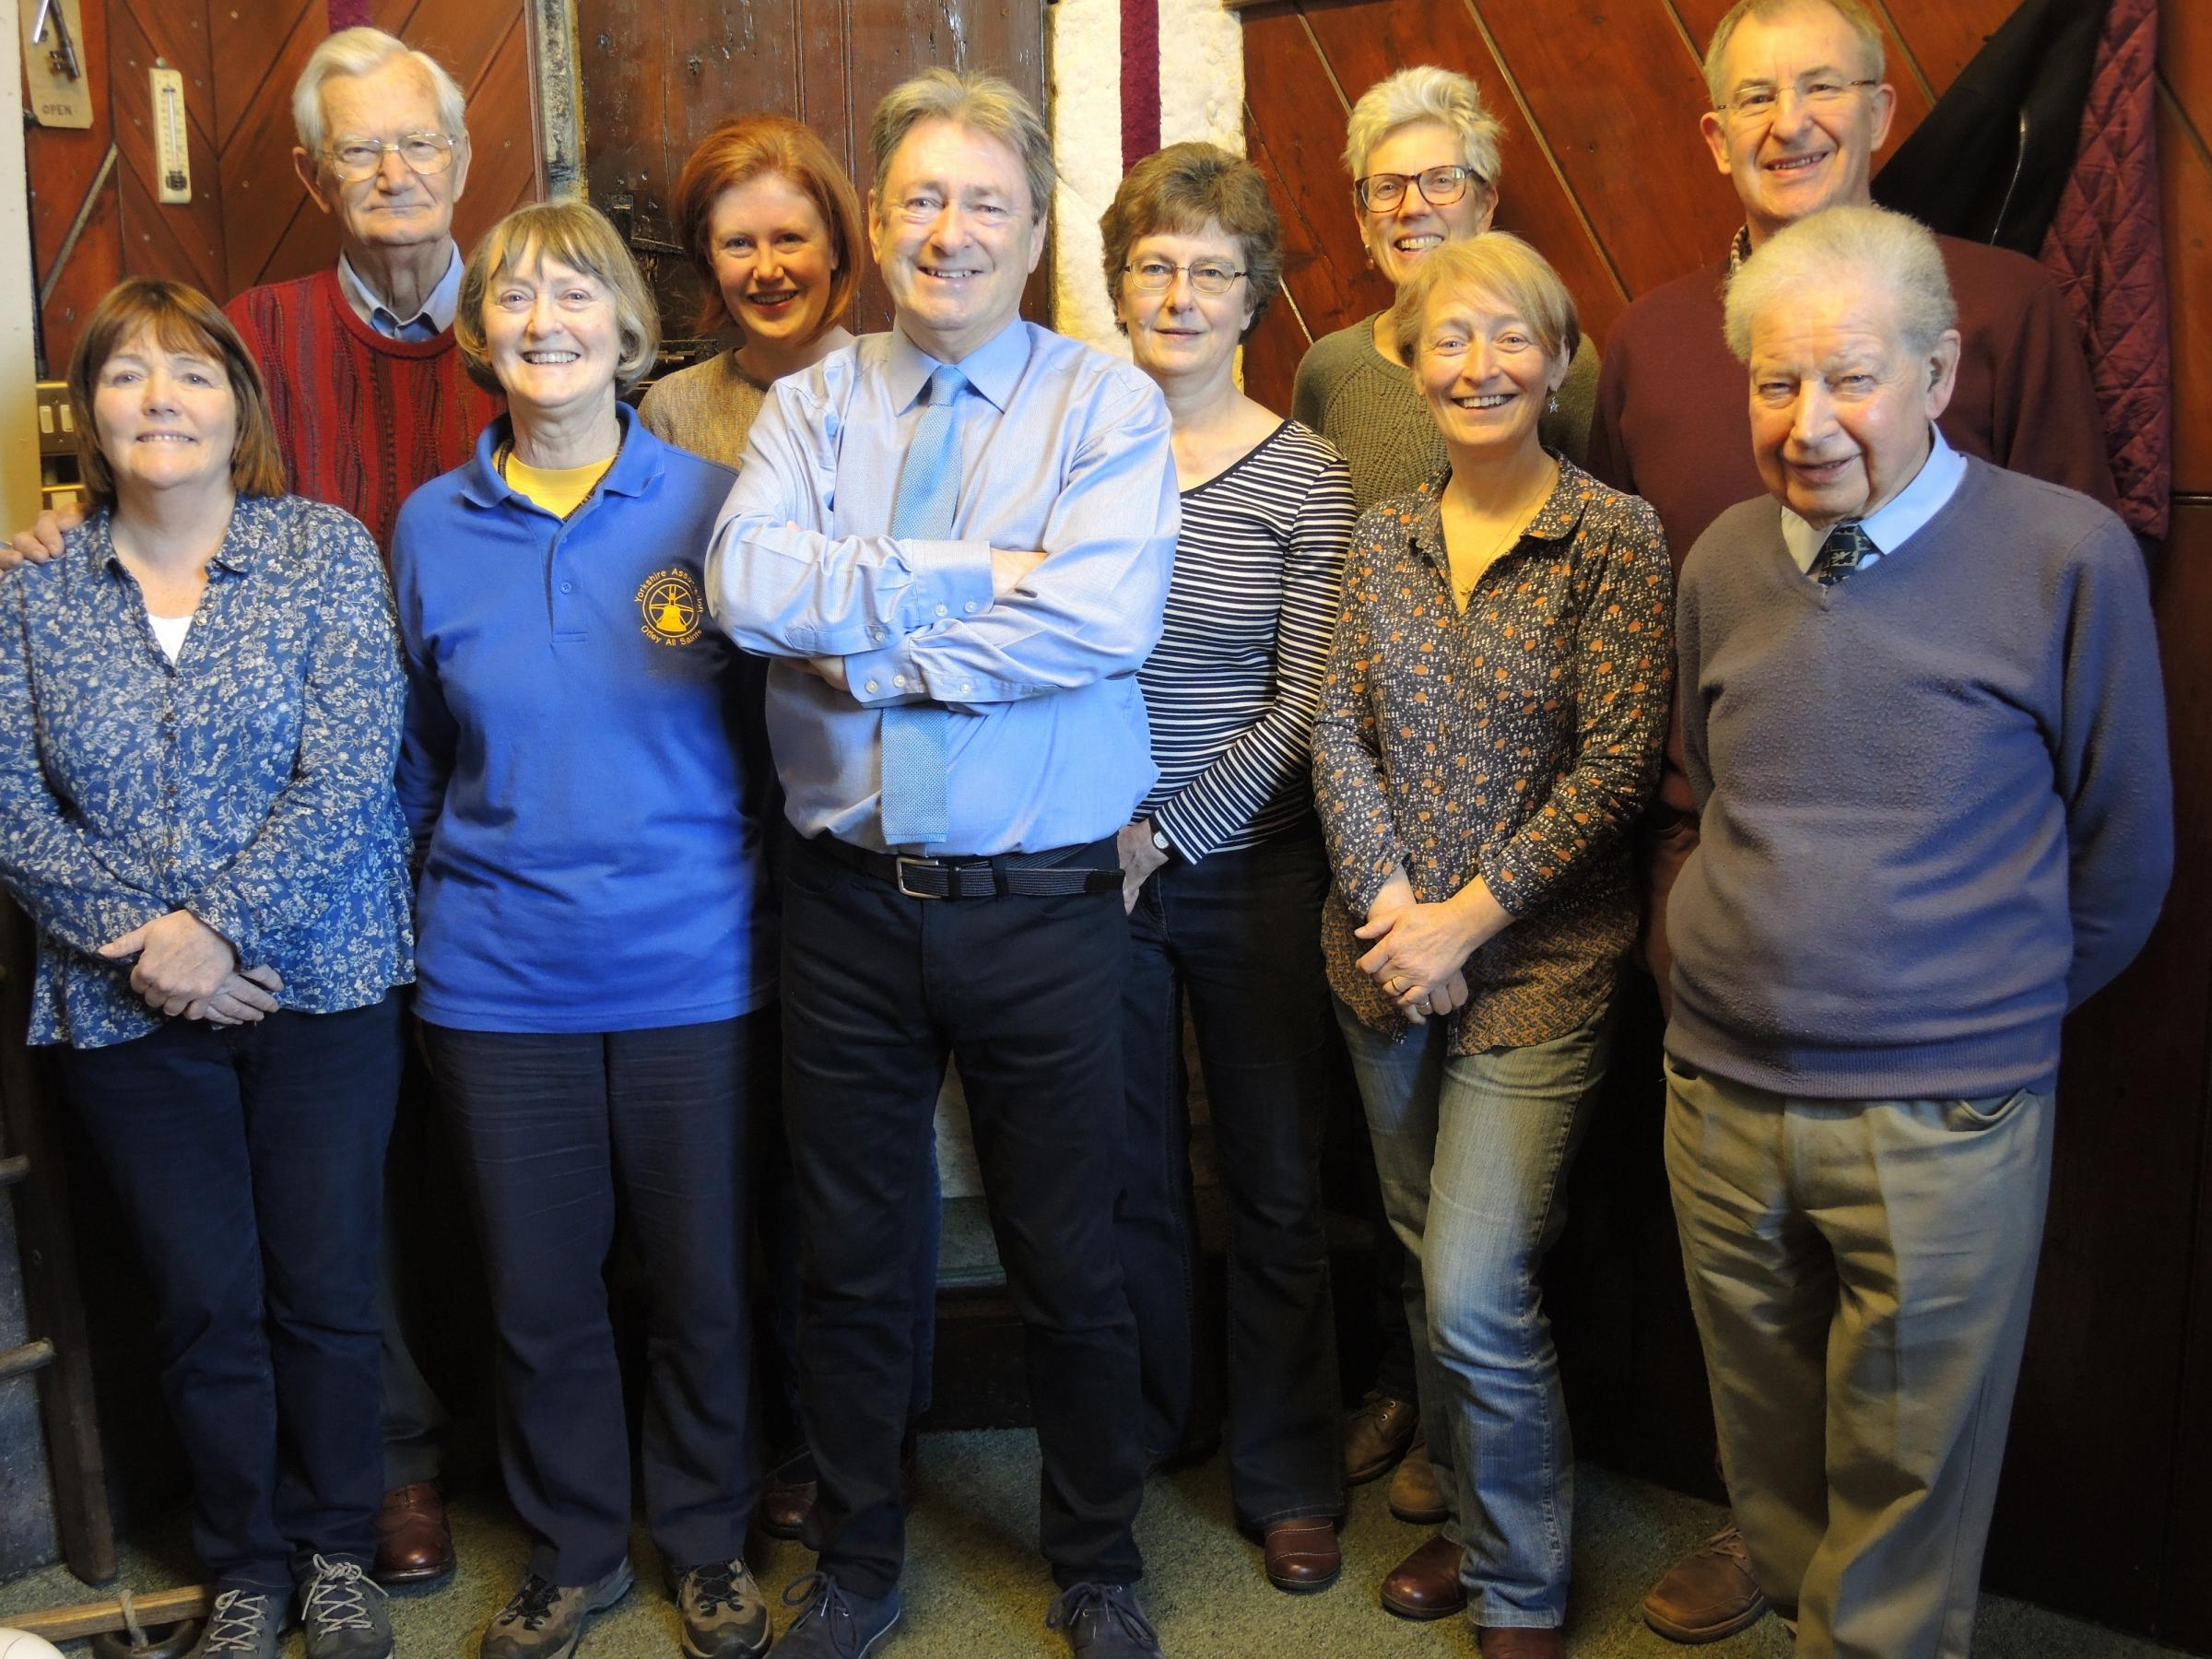 Ilkely ringers with Alan Titchmarsh.